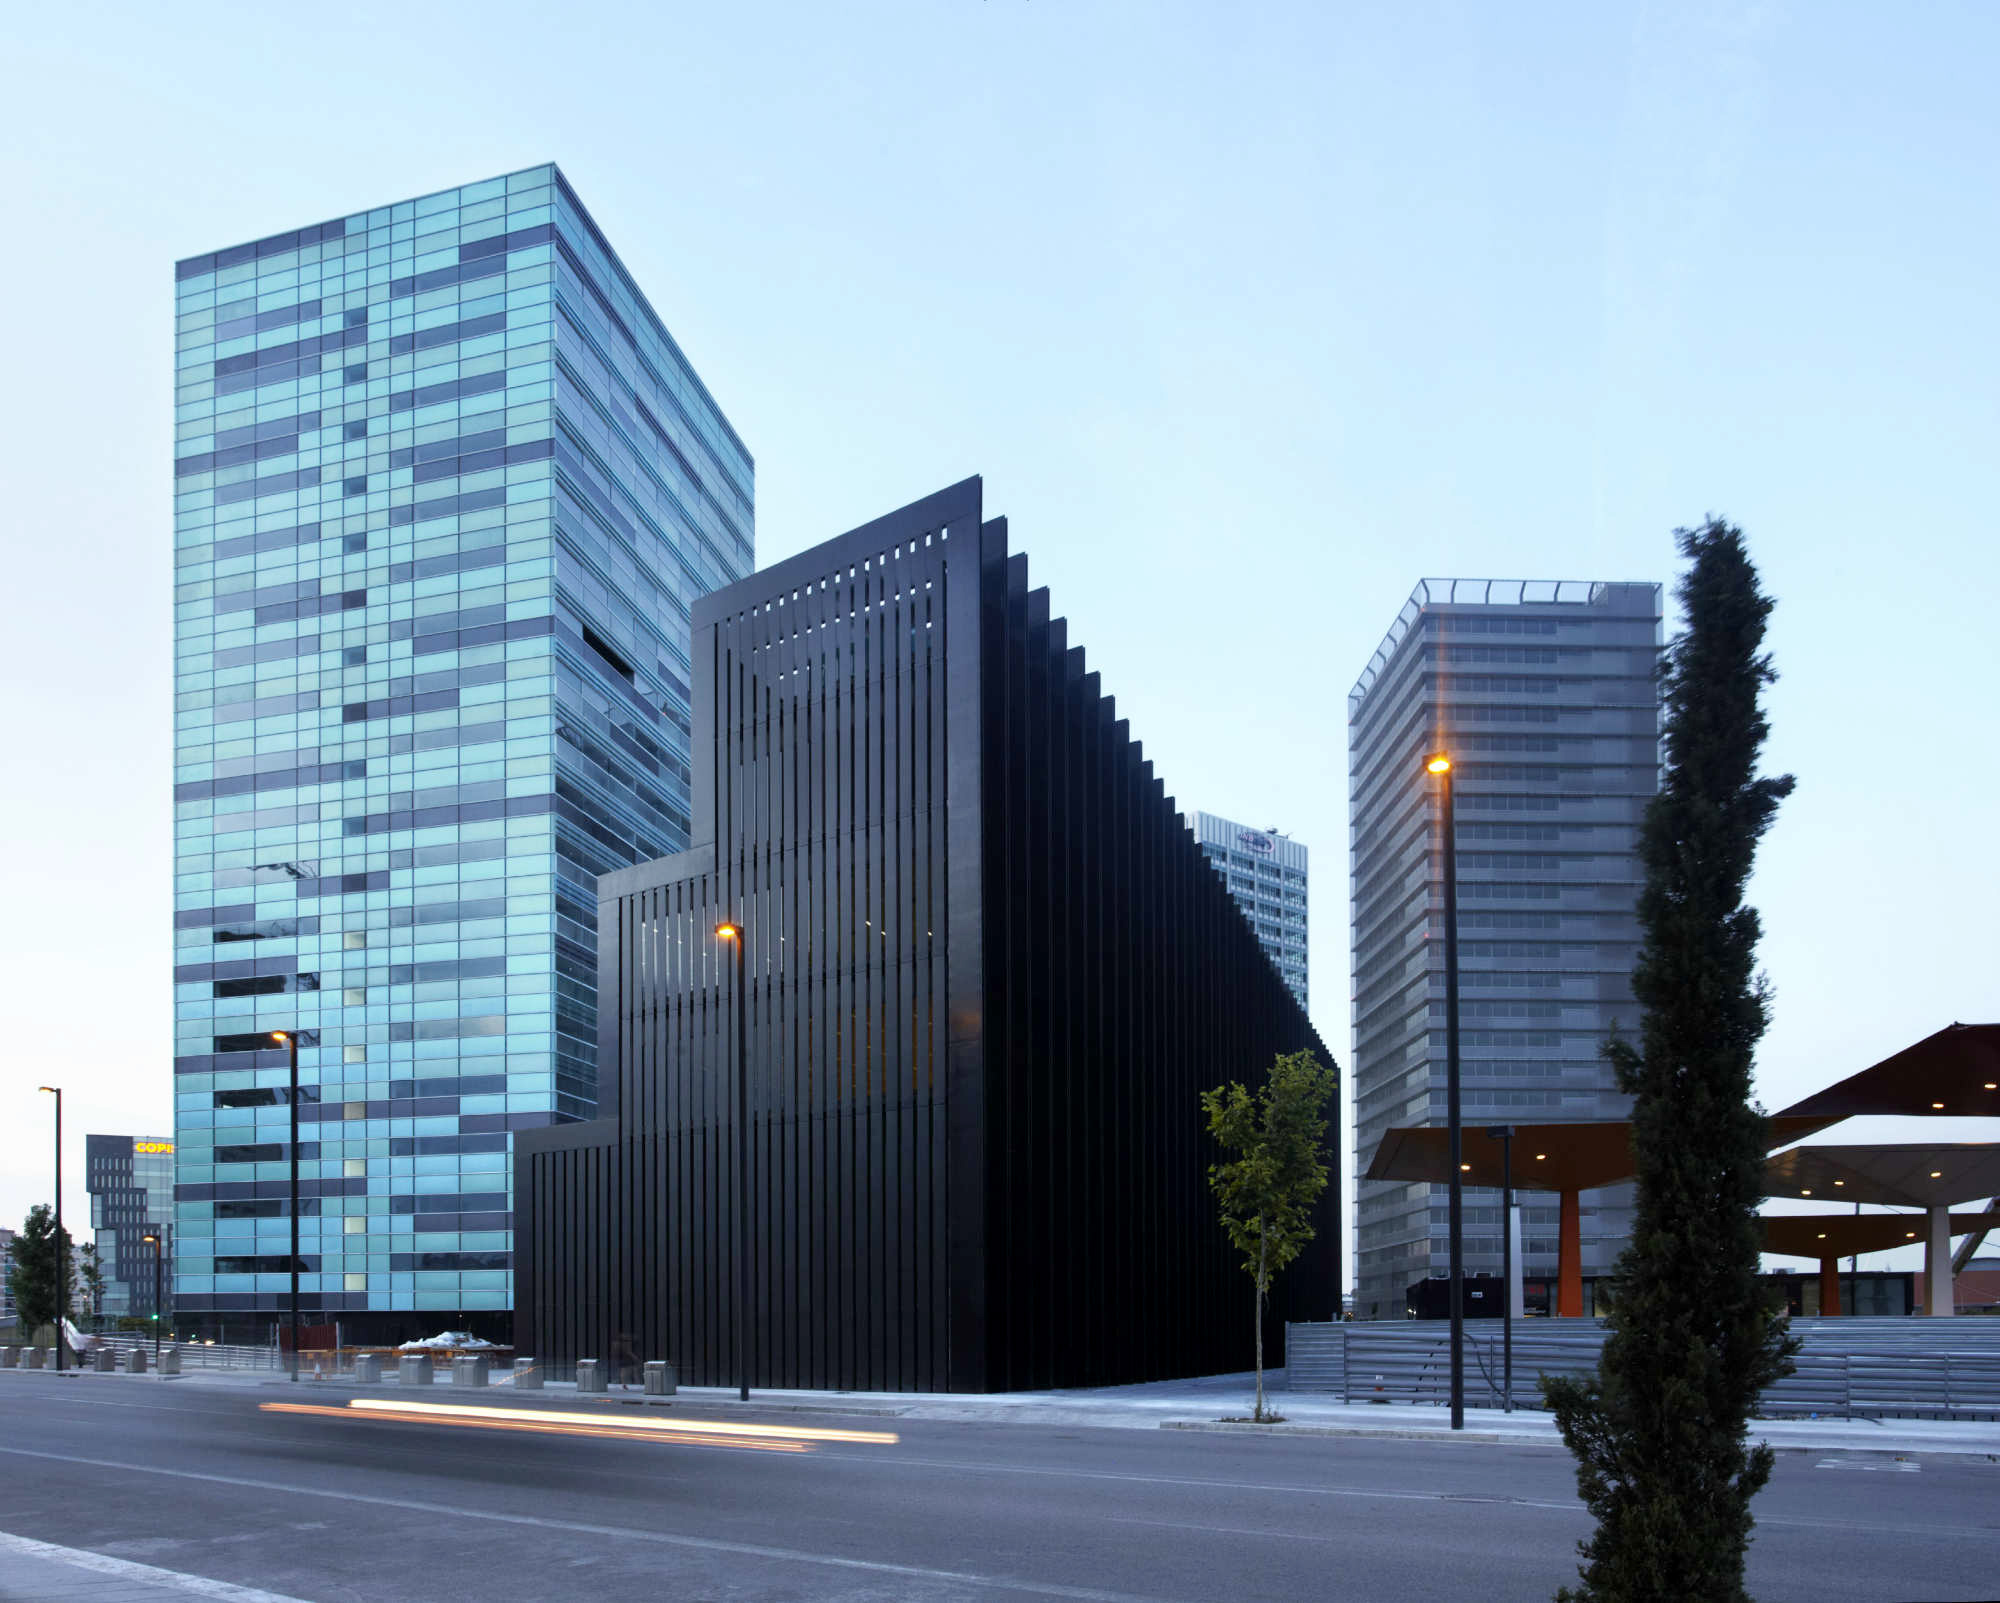 Plaza Europa 31, RCR Architects,rafaelvargas photo